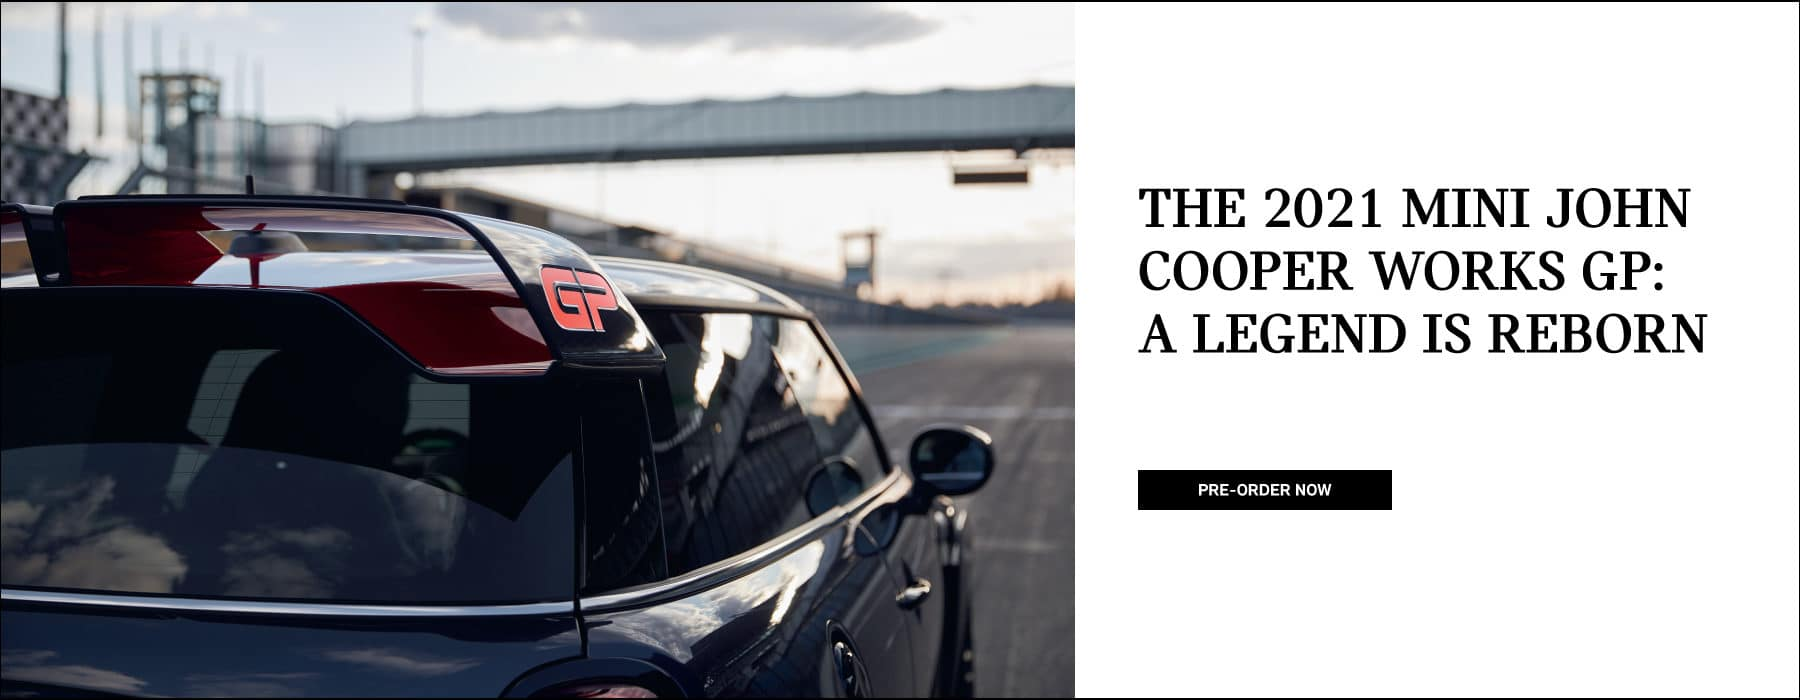 The 2021 MINI John Cooper Works GP: A legend is reborn.  Pre-order now.